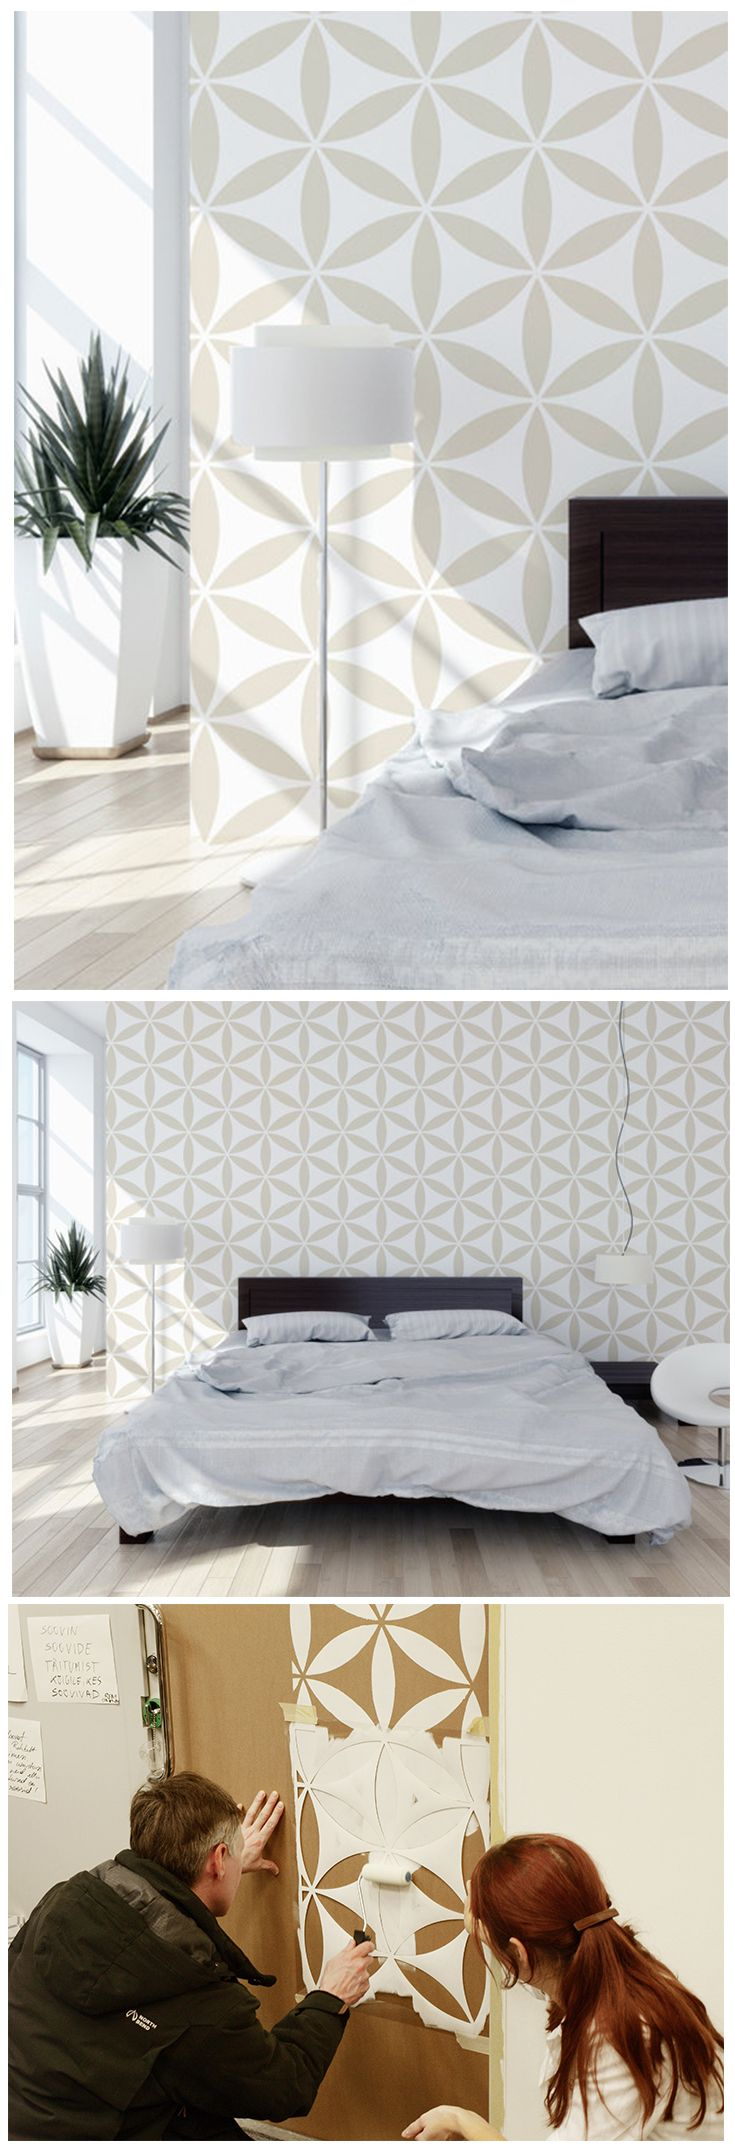 flower of the life ii decorative wall stencil for diy project wallpaper look easy home decor geometric stencil. beautiful ideas. Home Design Ideas